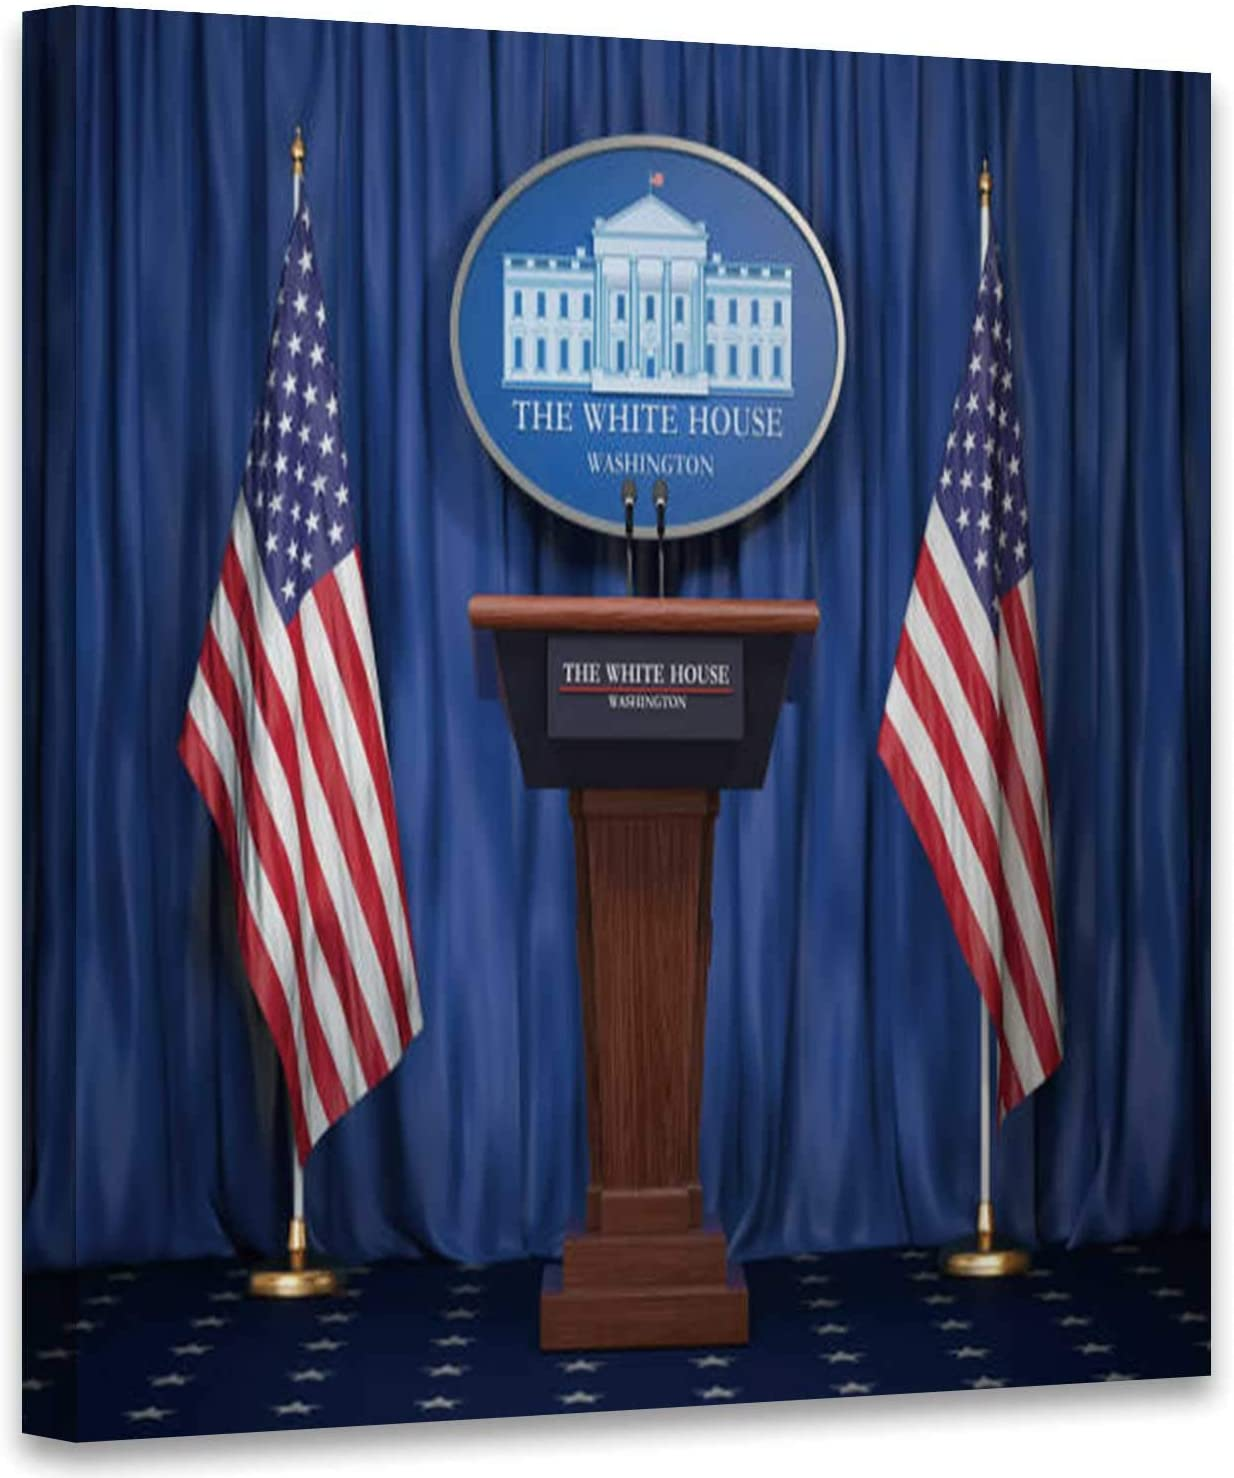 Amazon Com Briefing Of President Us United States In White House Podium Colorful Tribune With Usa Flags And Sign Houise Politics Concept Usa Art Print For Kitchen Washington Dc Art Print For Office Decor 12x12